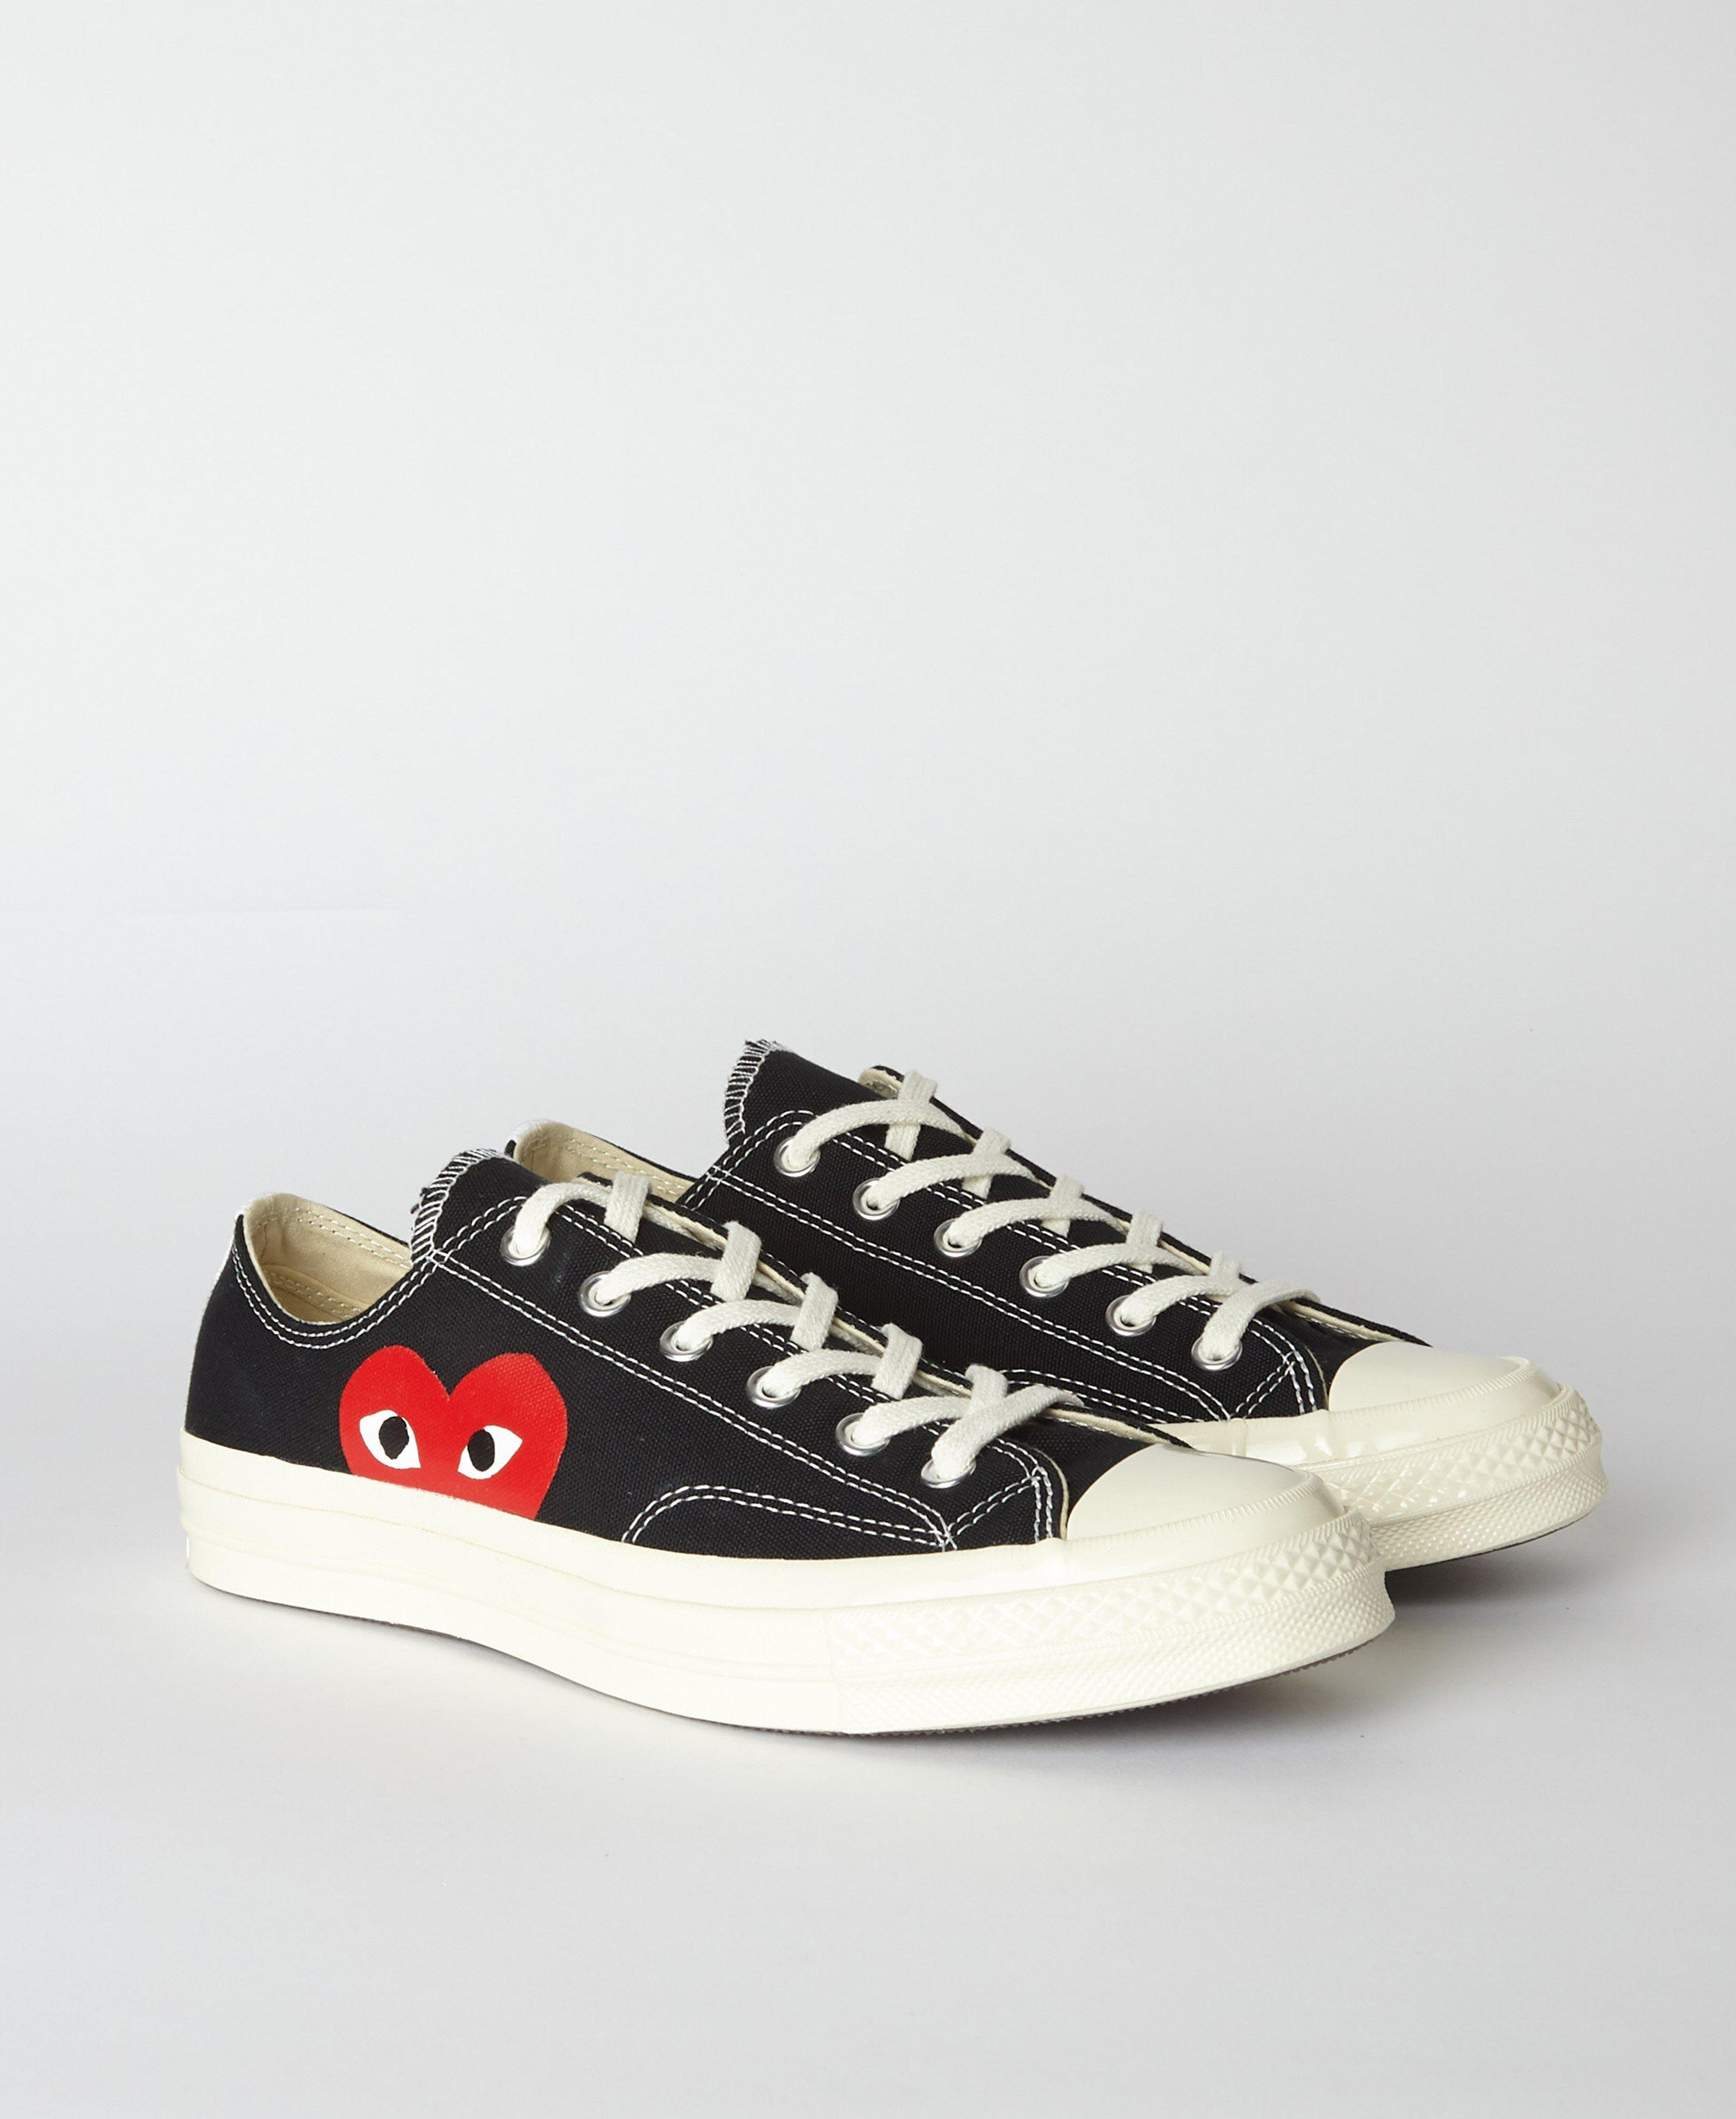 COMME DES GARÇONS PLAY Black Play X Converse 70s Chuck Taylor All Star Low  in Black for Men - Save 23% - Lyst 87219af36